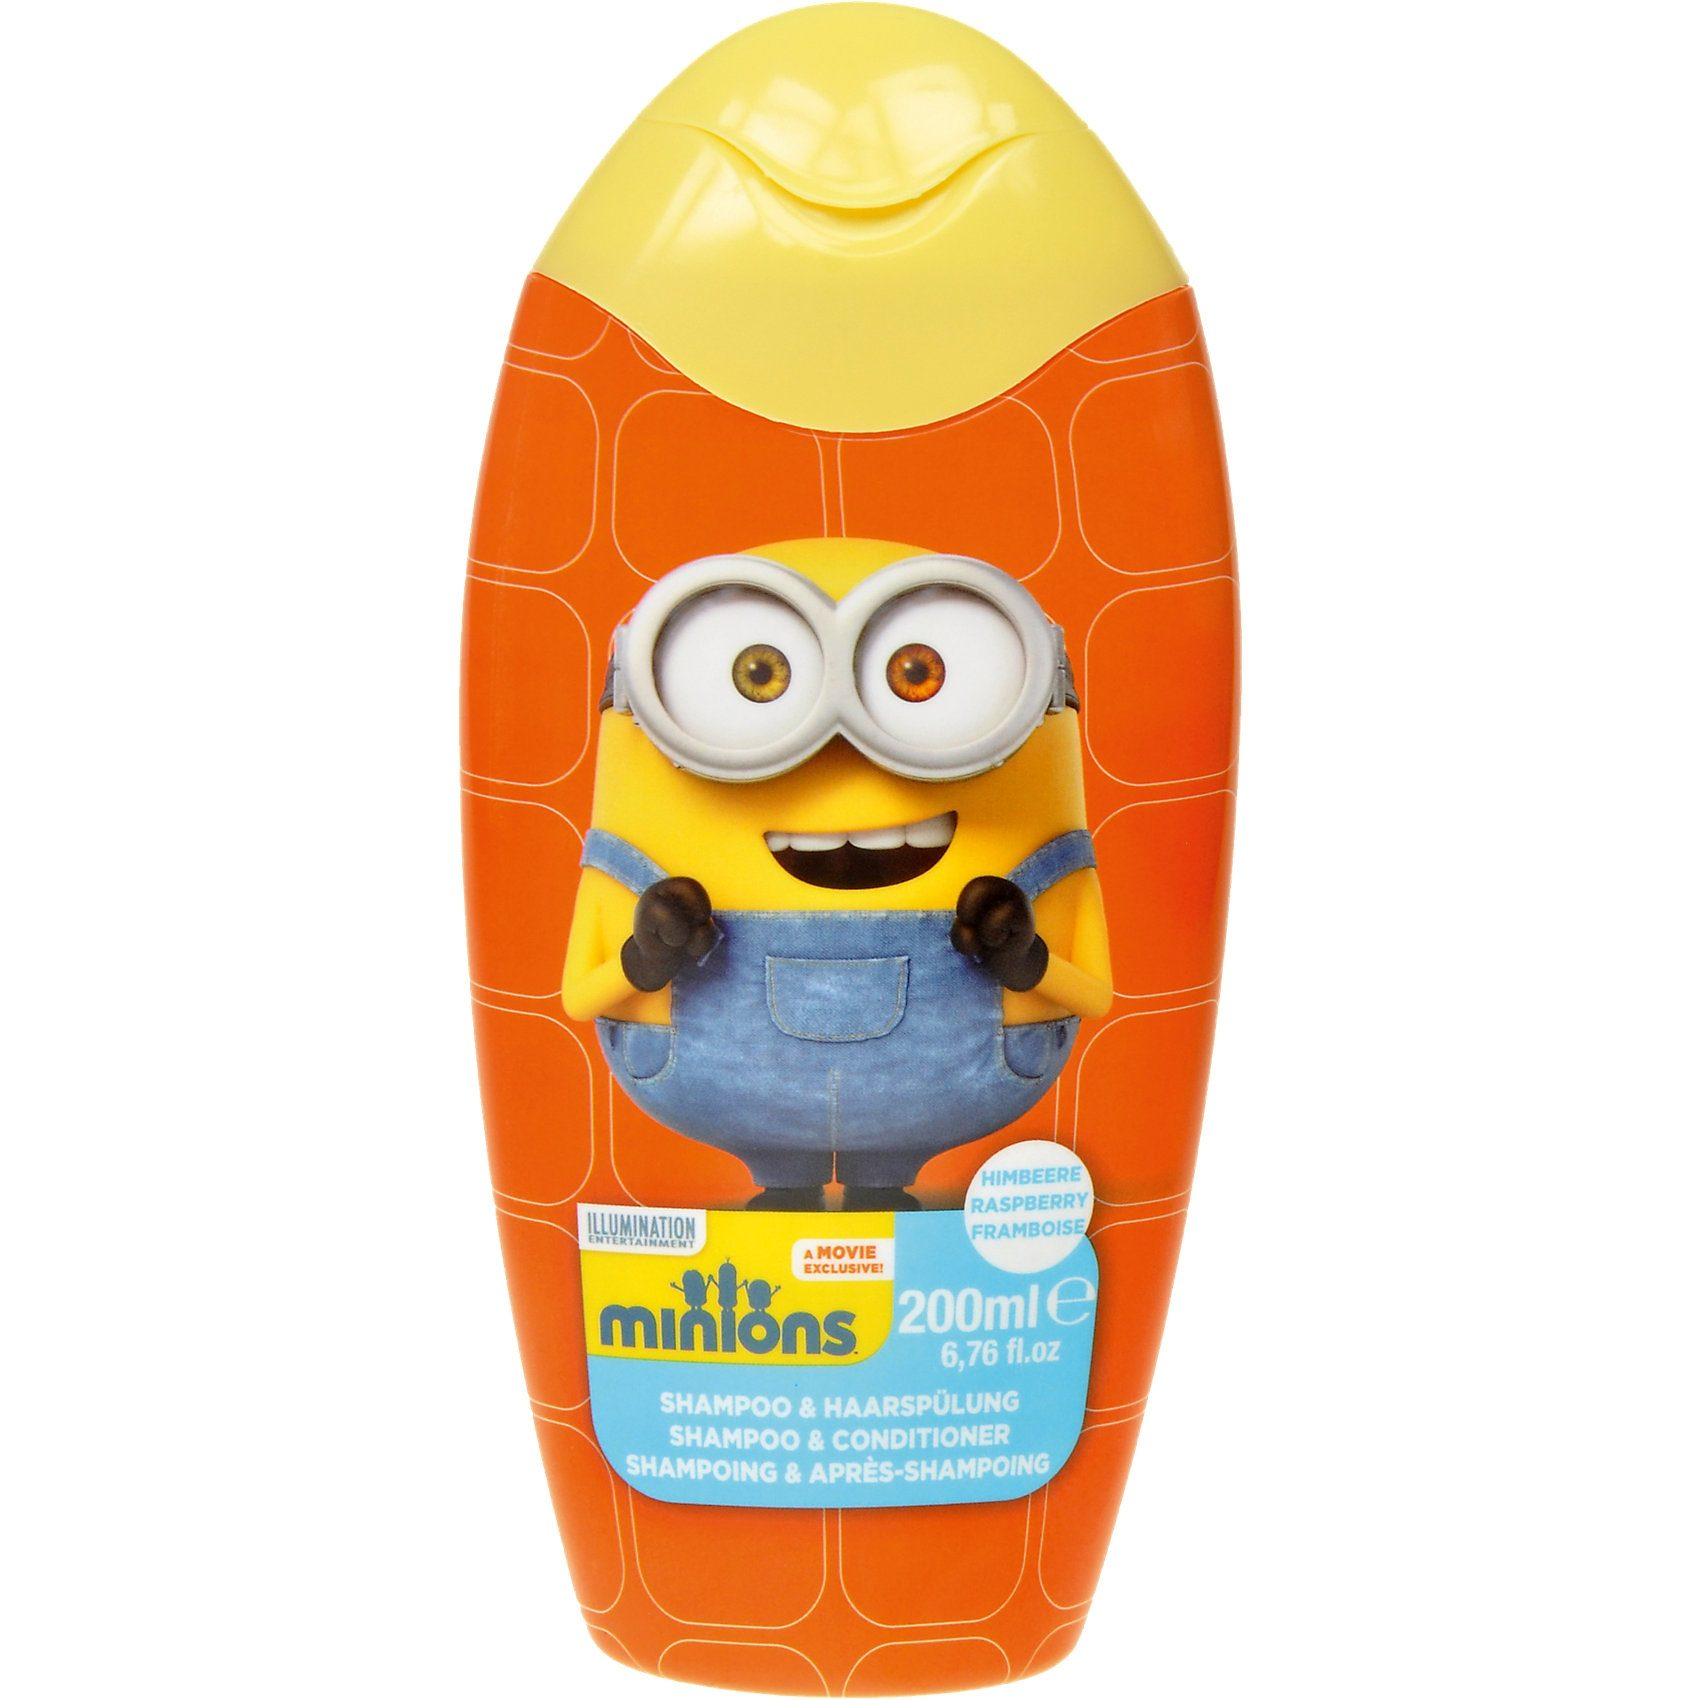 Shampoo & Conditioner 2 in 1, Minions, 200 ml